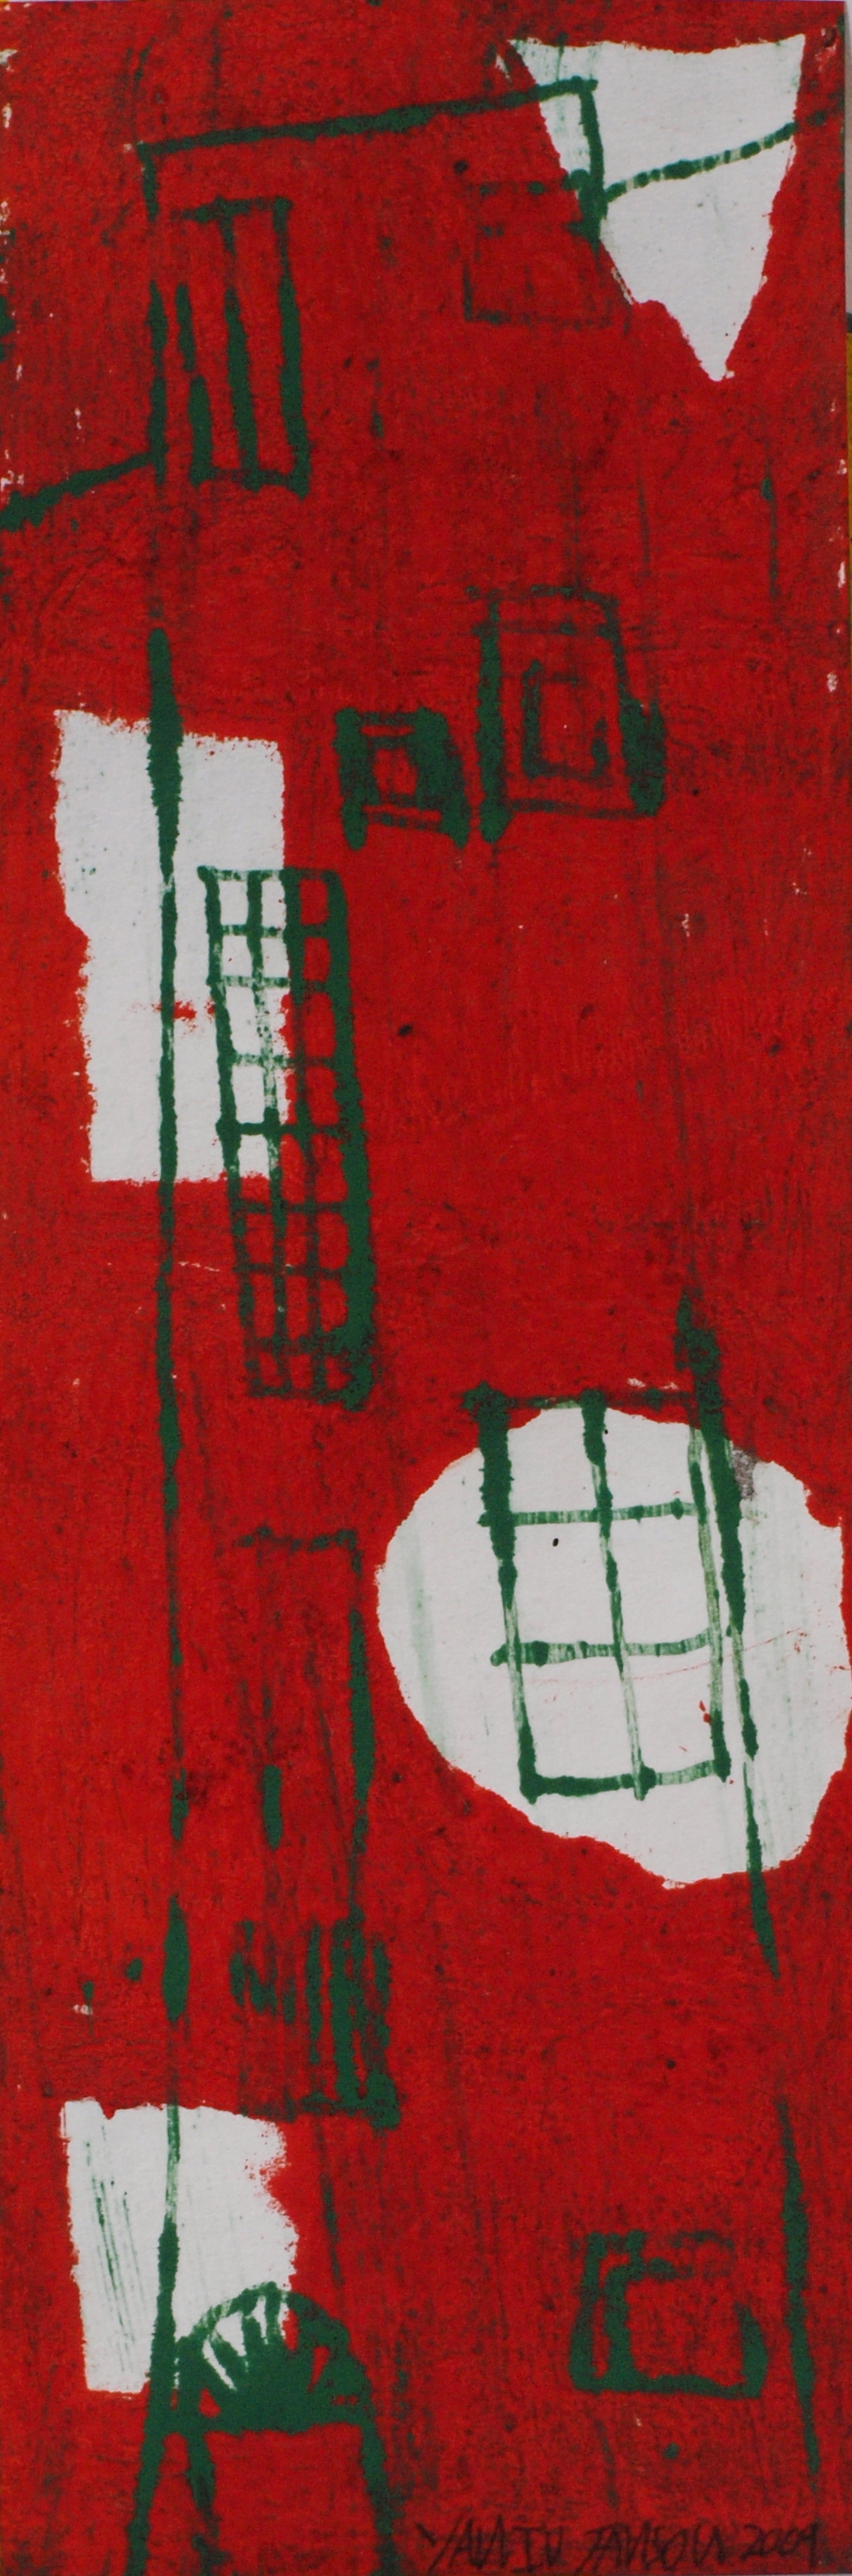 RED HOUSES, MONOPRINT, 12 X 38CM